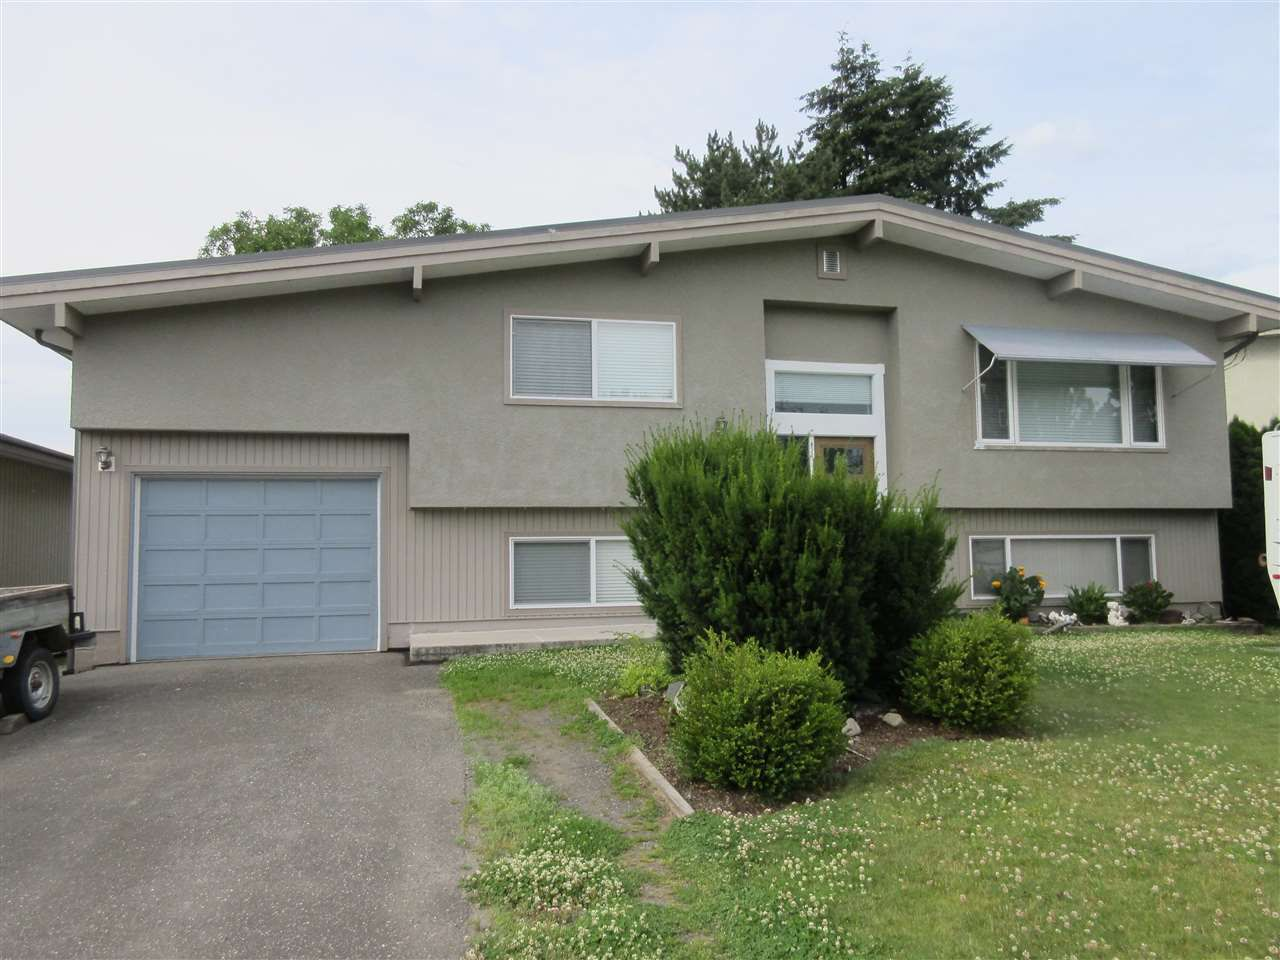 Main Photo: 10104 HYMAR Drive in Chilliwack: Fairfield Island House for sale : MLS®# R2331916